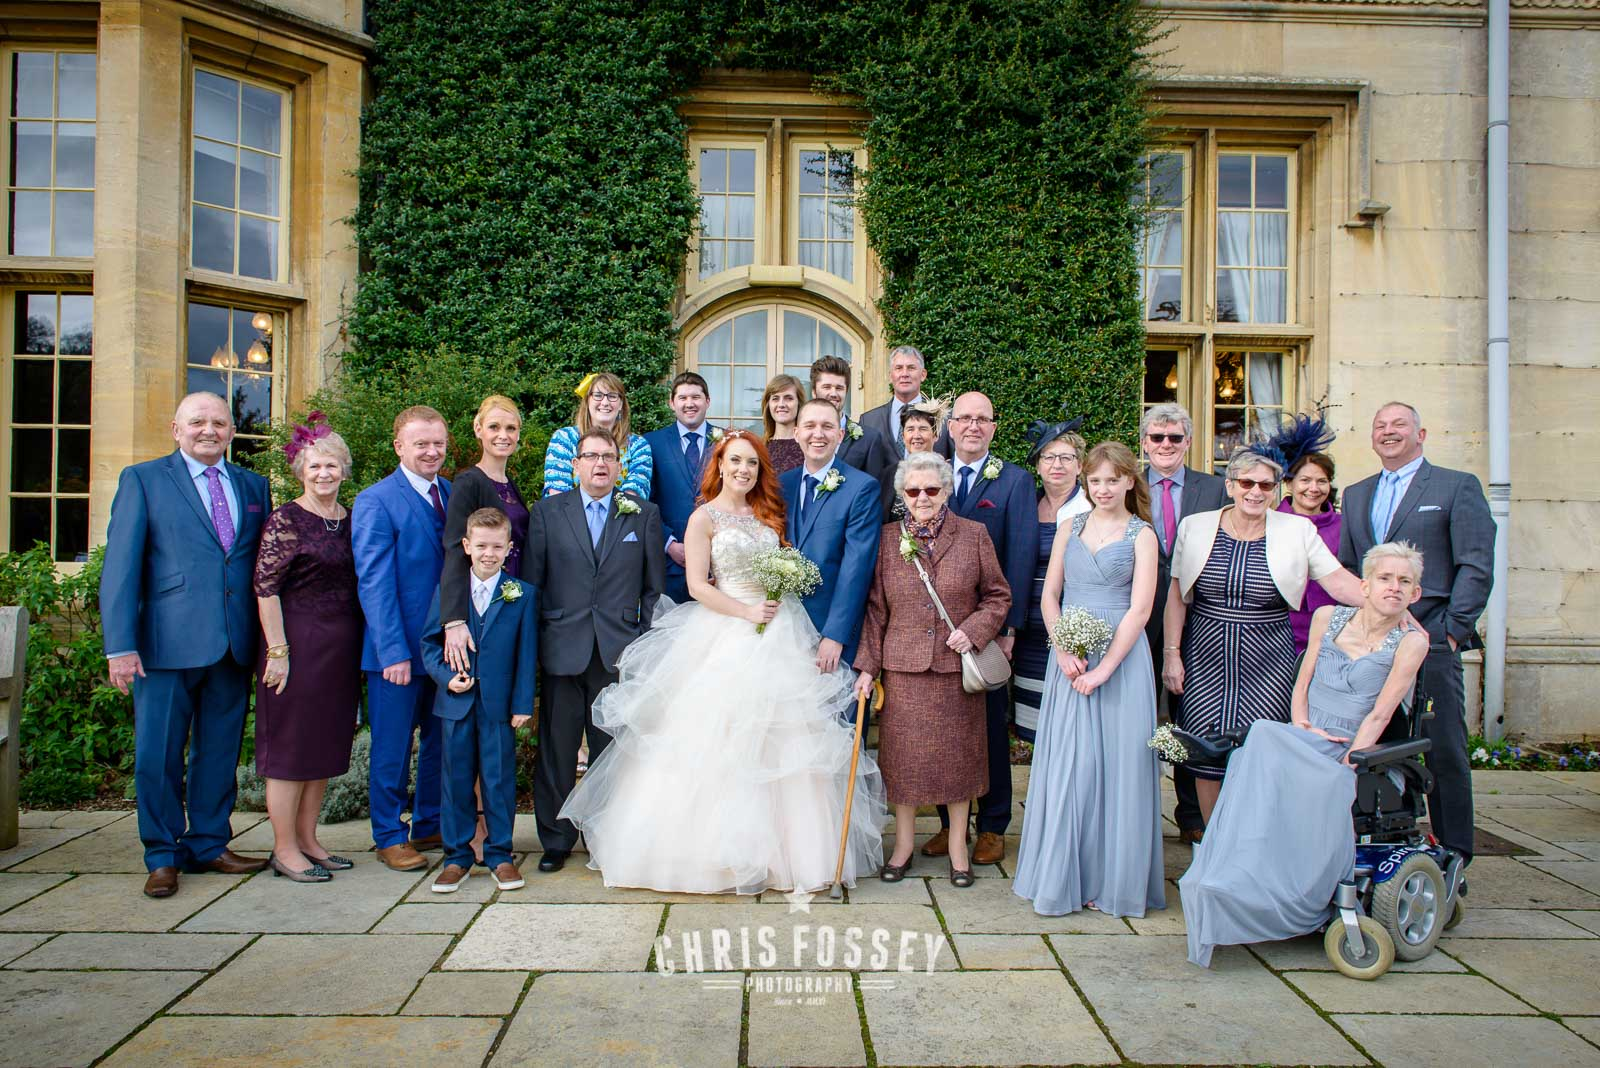 Dumbleton Hall Worcesterhsire Wedding Photography North Warwickshire by Chris Fossey Photography